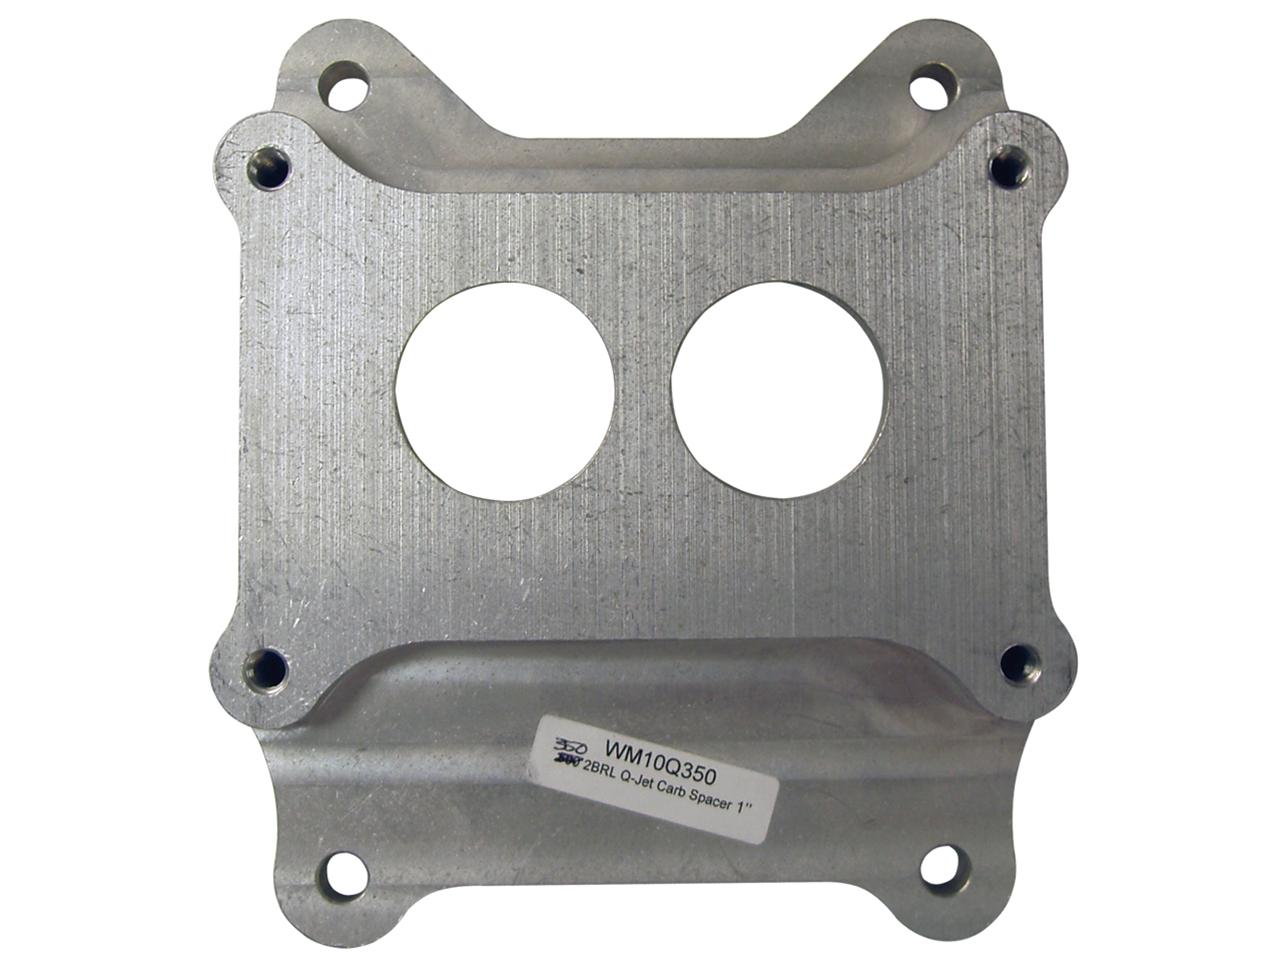 Picture of Wehrs Carburetor Adapter - 350-2 Barrel to Q-Jet Intake